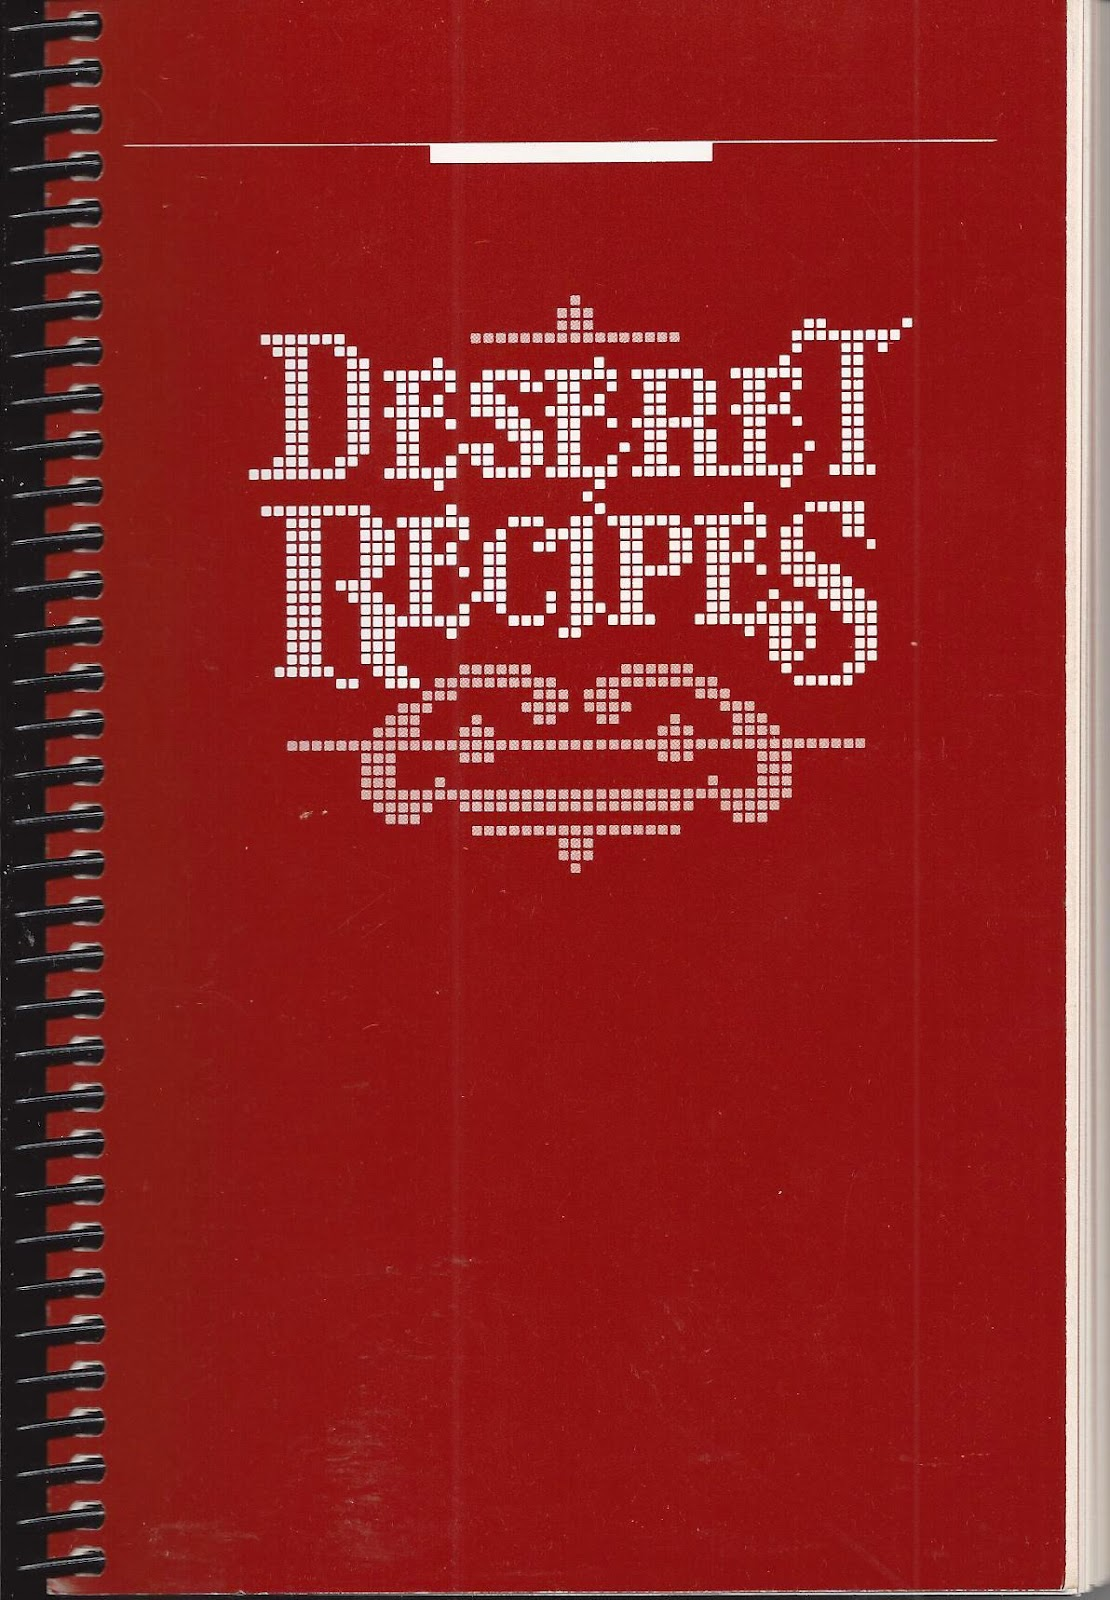 The iowa housewife deseret recipes i purchased my cookbook deseret recipes from the lds online store for 650 the price appears to have increased to 899 still a great bargain forumfinder Images